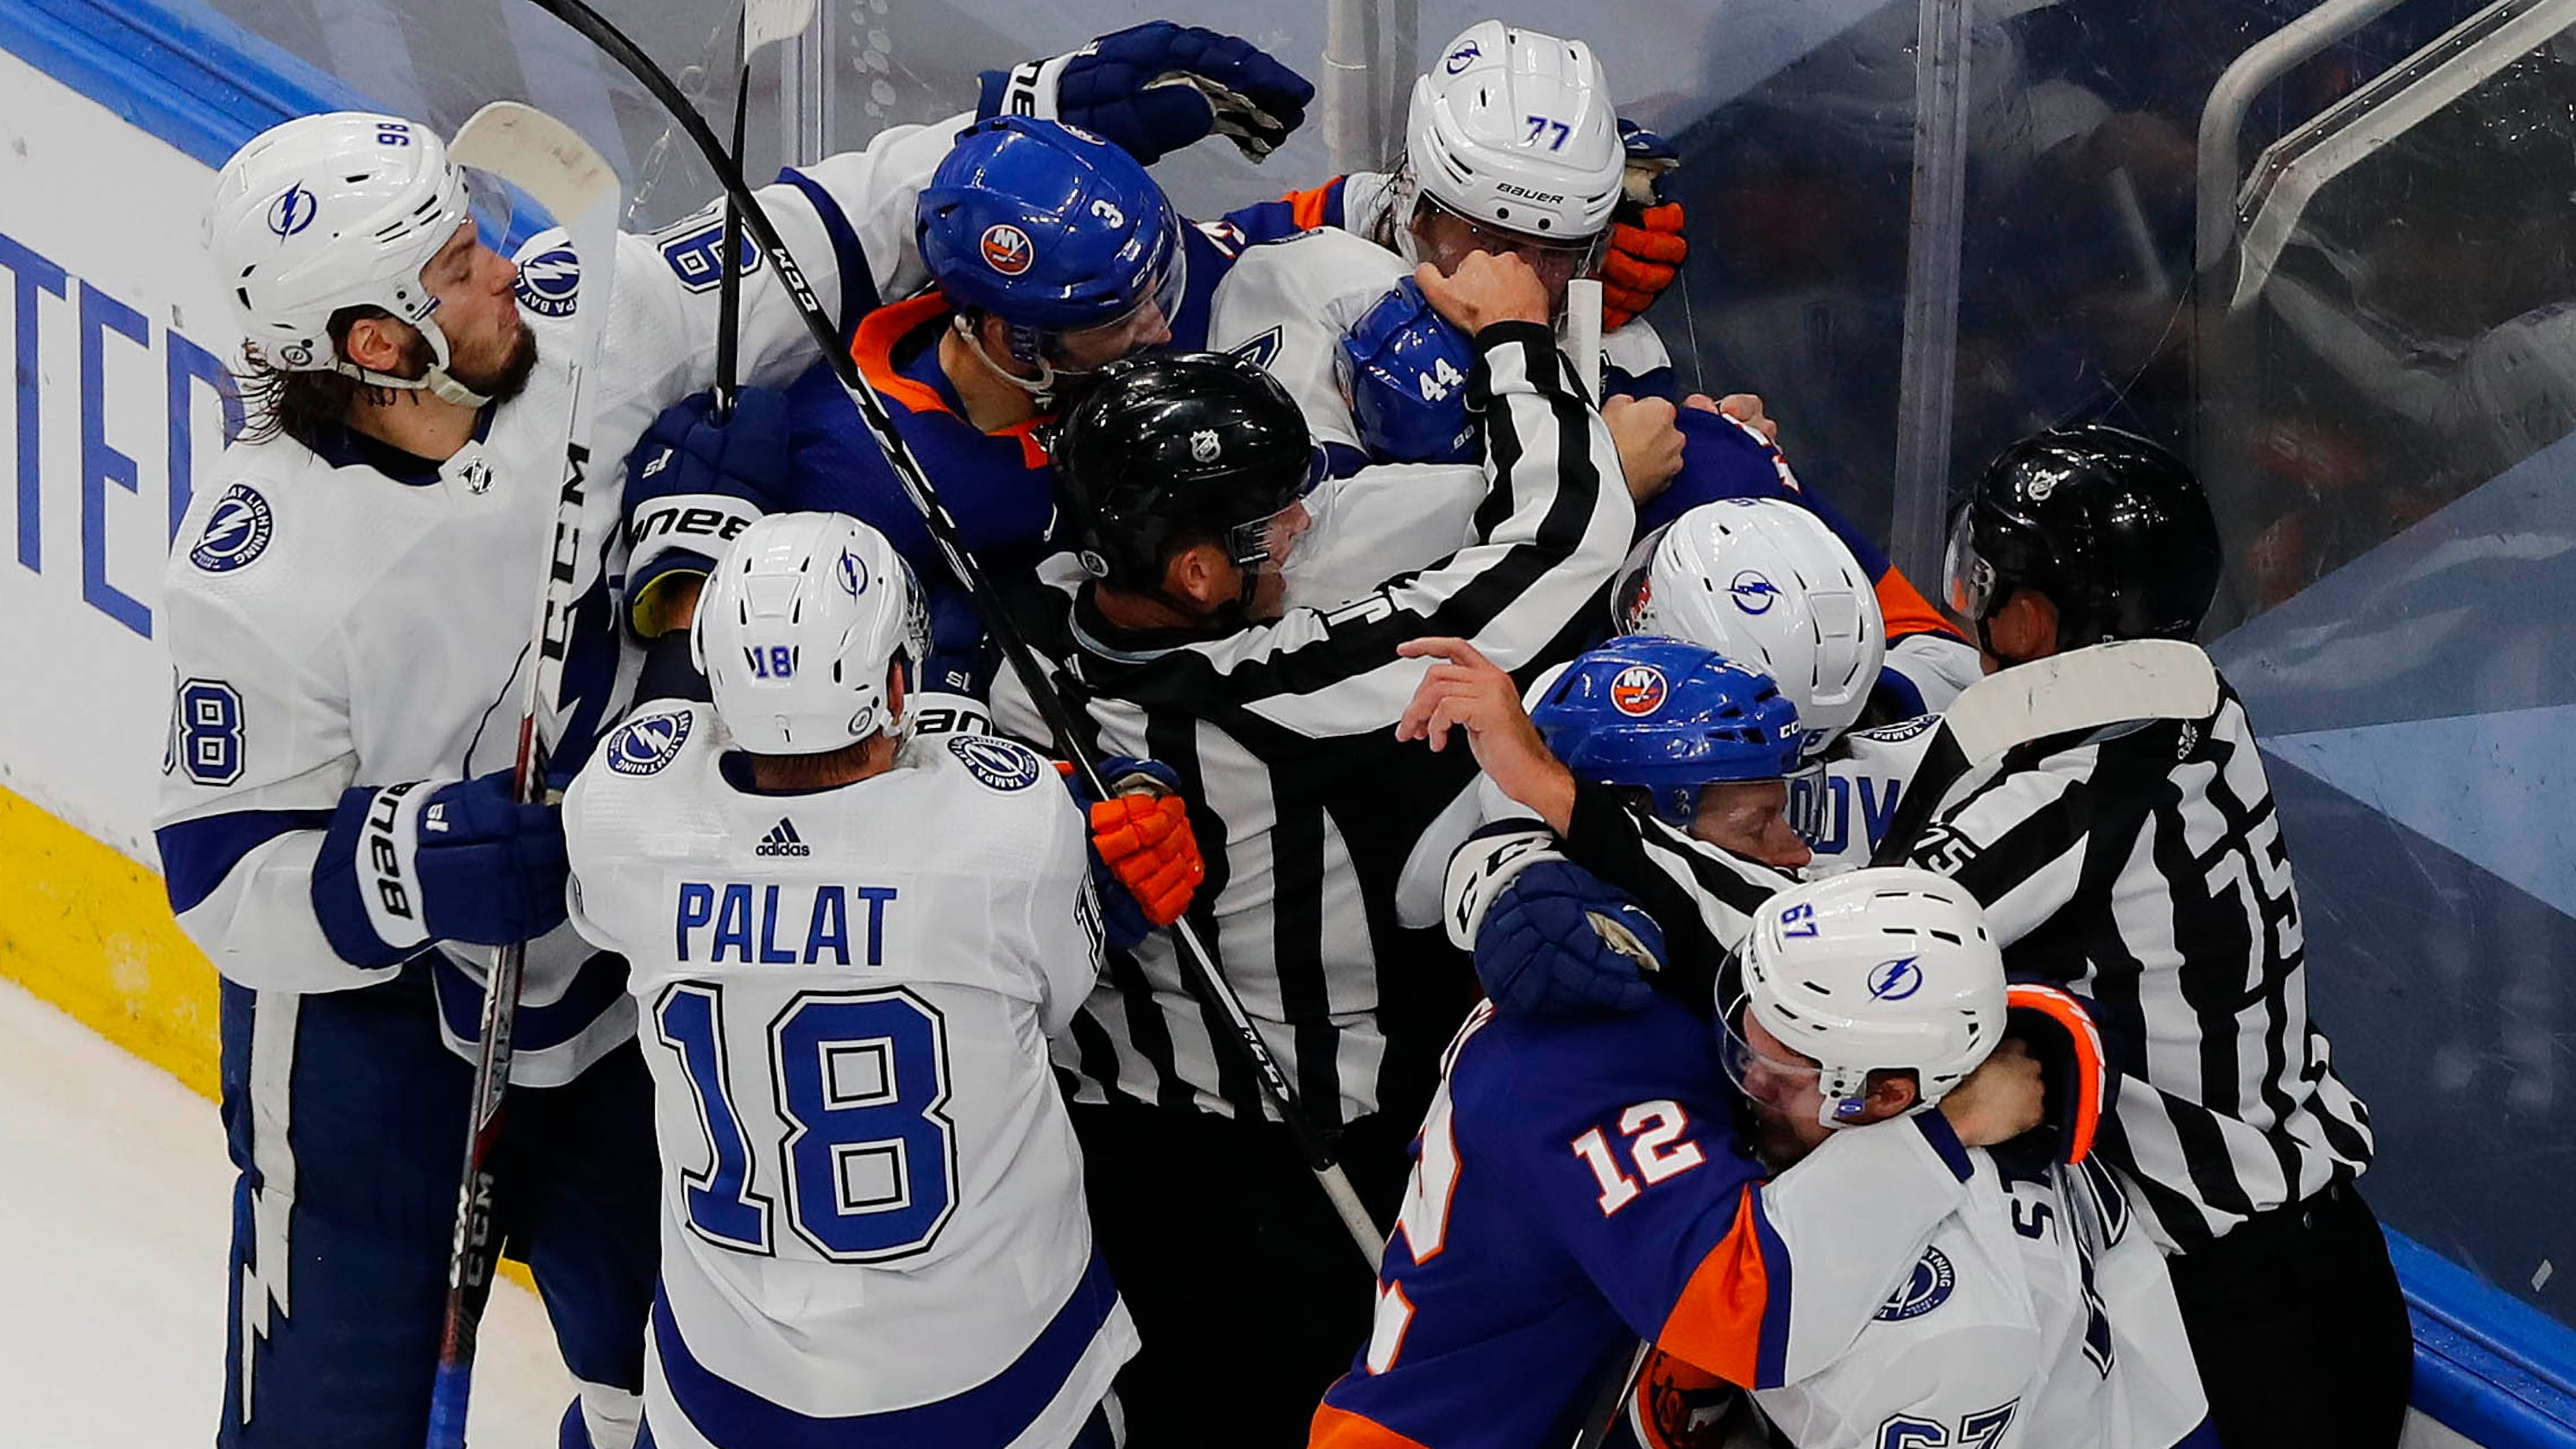 Islanders, Lightning get rough near end of New York win